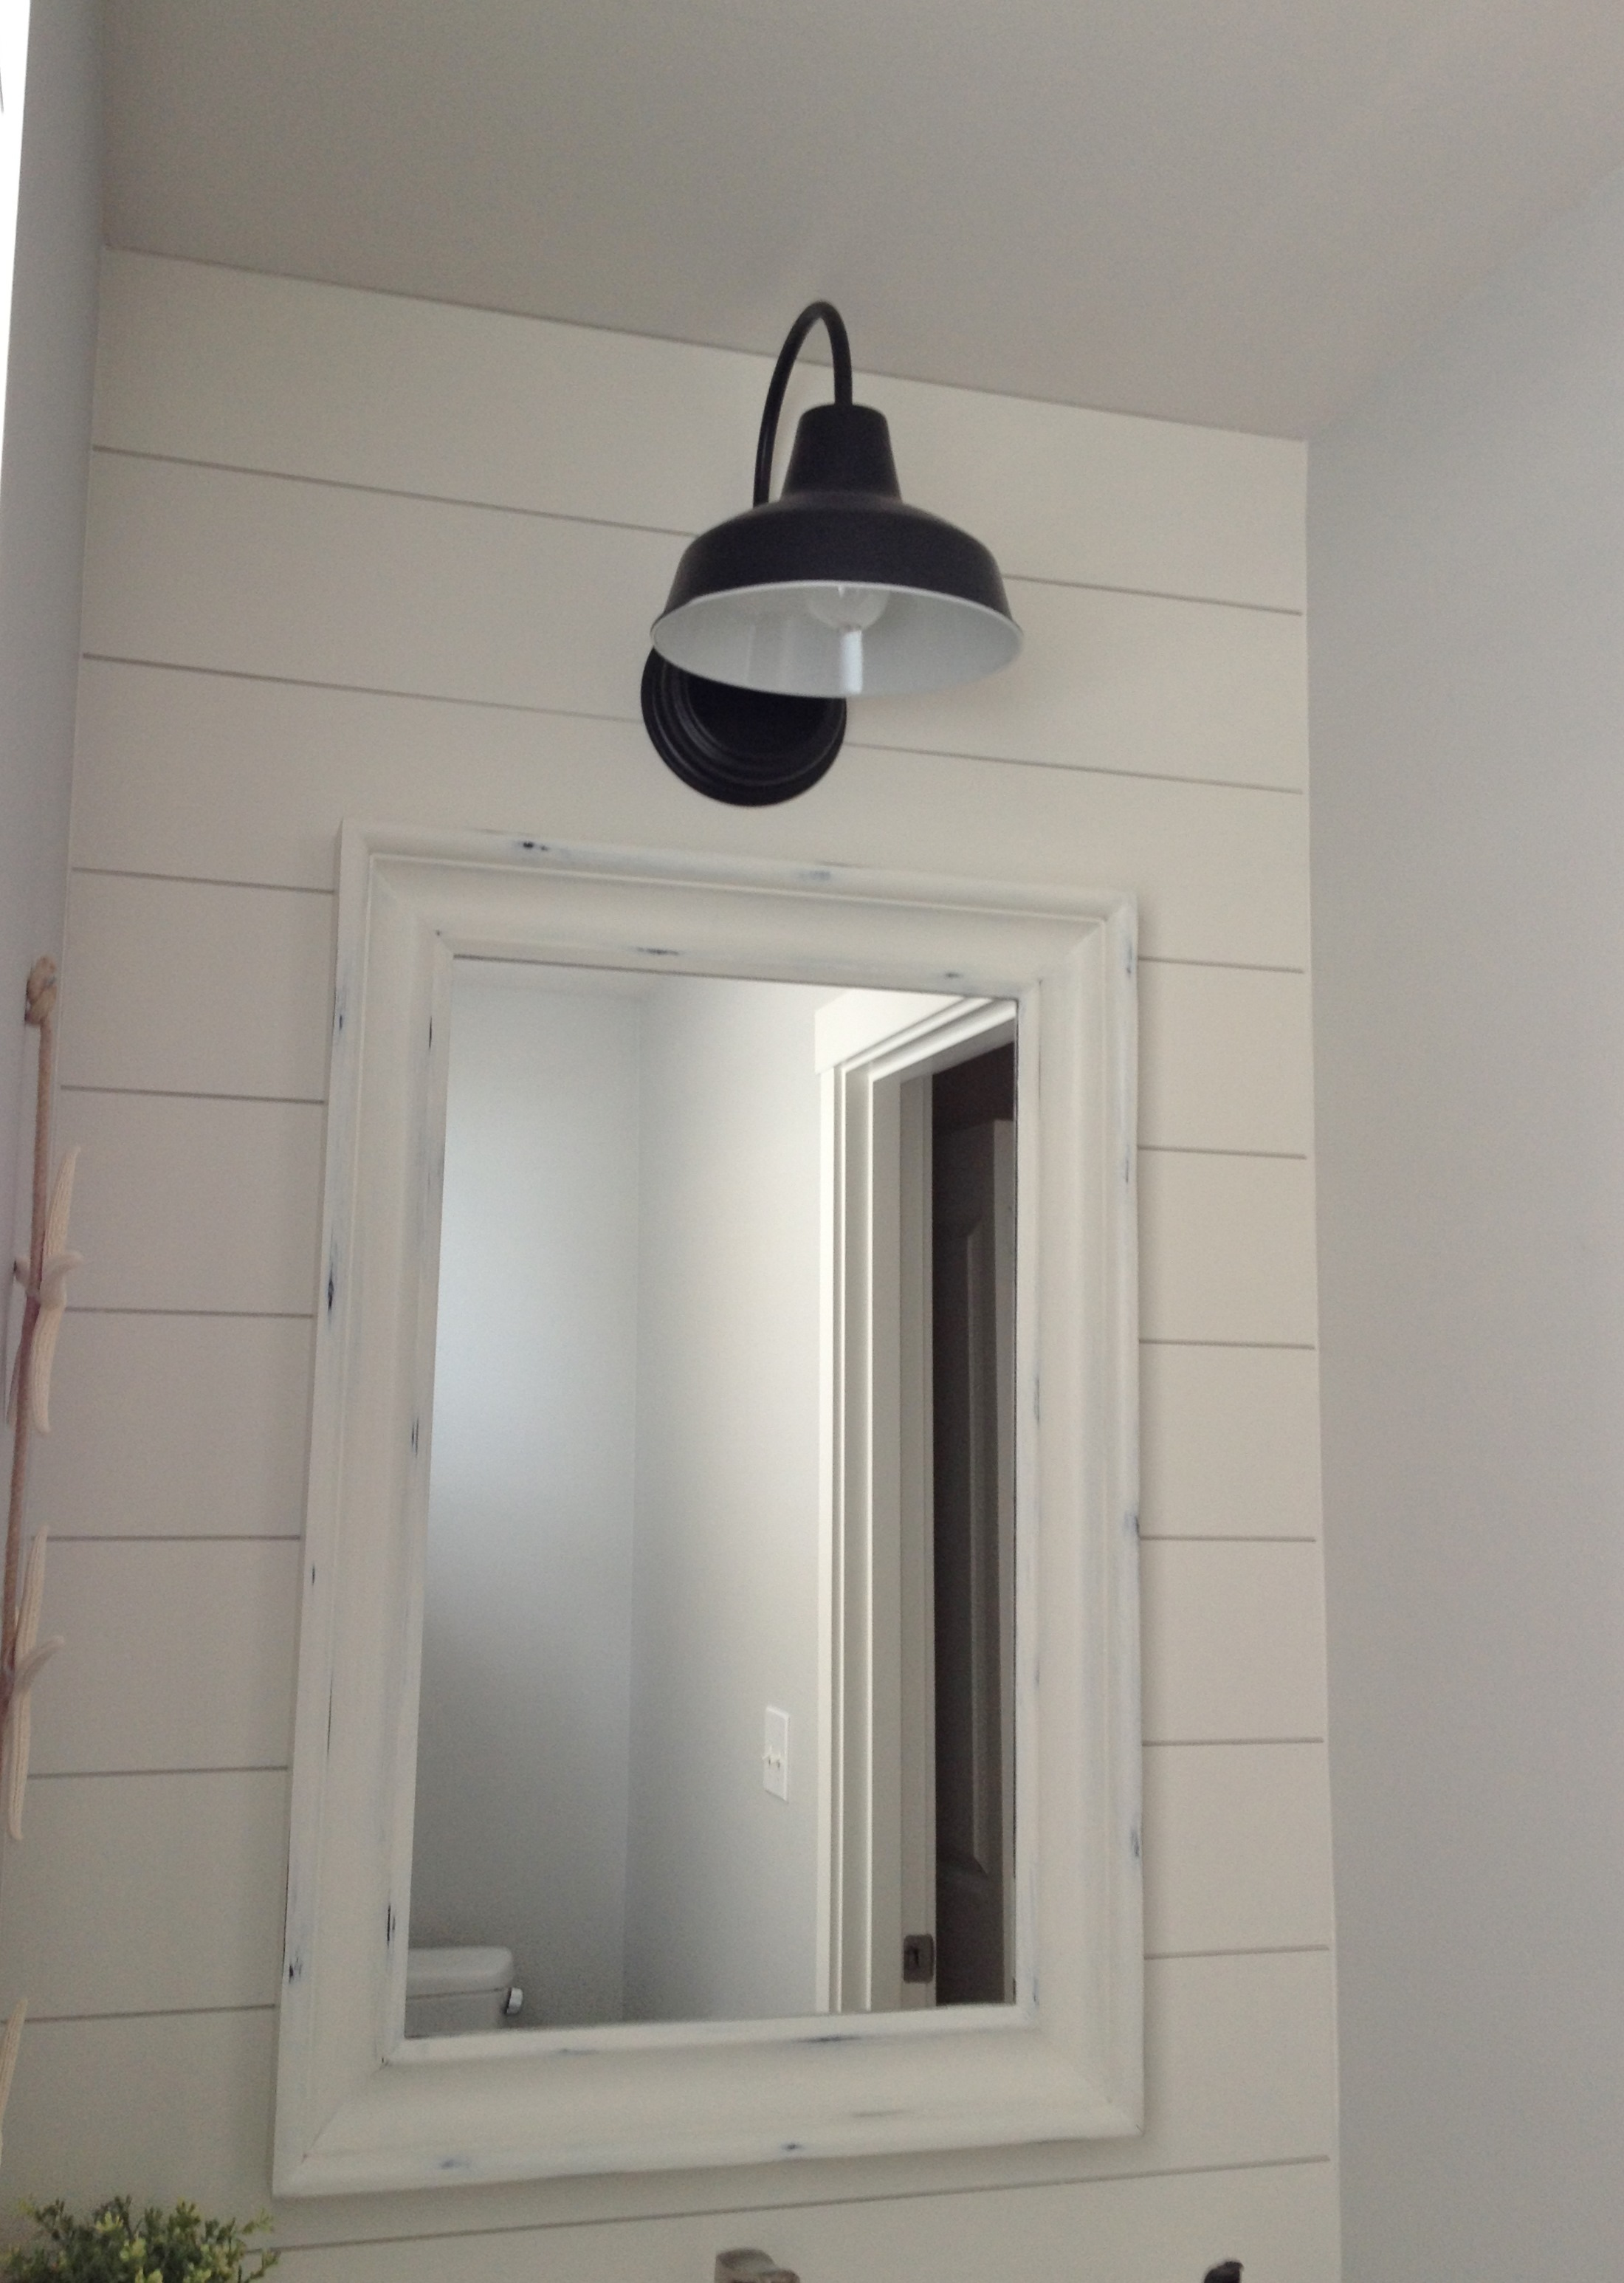 Barn wall sconce lends farmhouse look to powder room remake blog featured customer barn wall sconce lends farmhouse look to powder room remake aloadofball